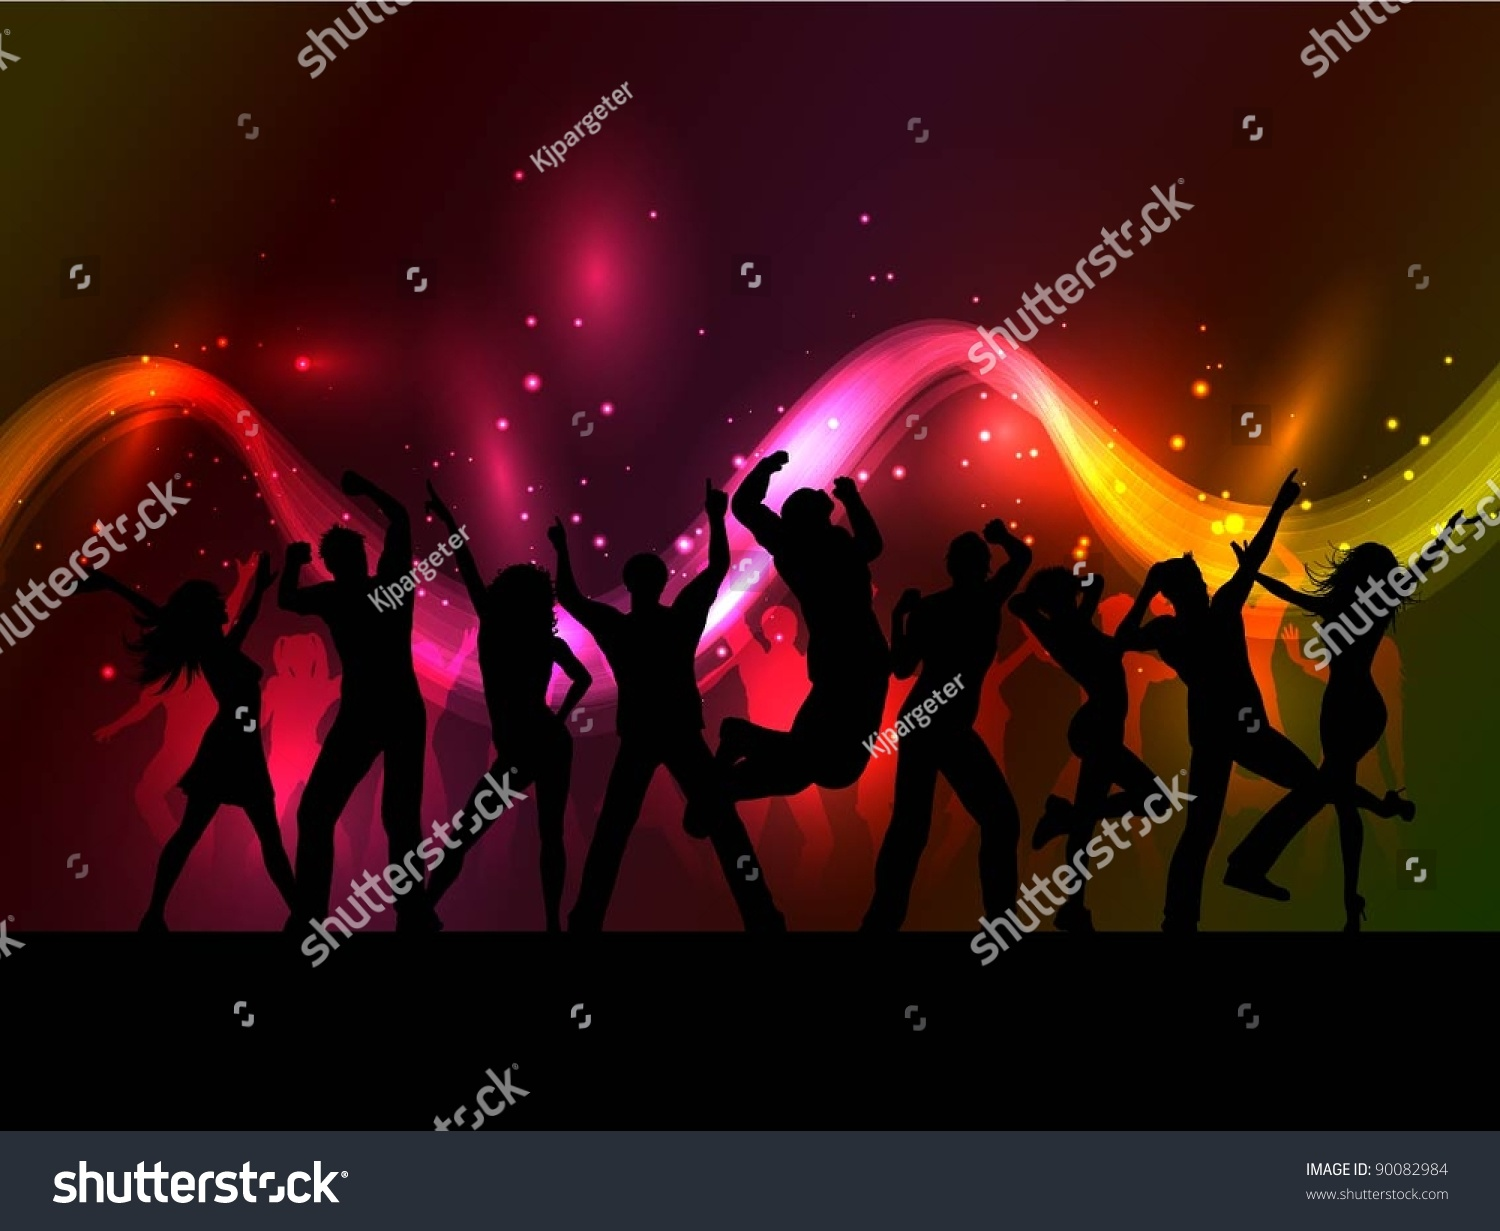 Silhouette Dance Music Abstract Background: Silhouettes Of People Dancing On An Abstract Background